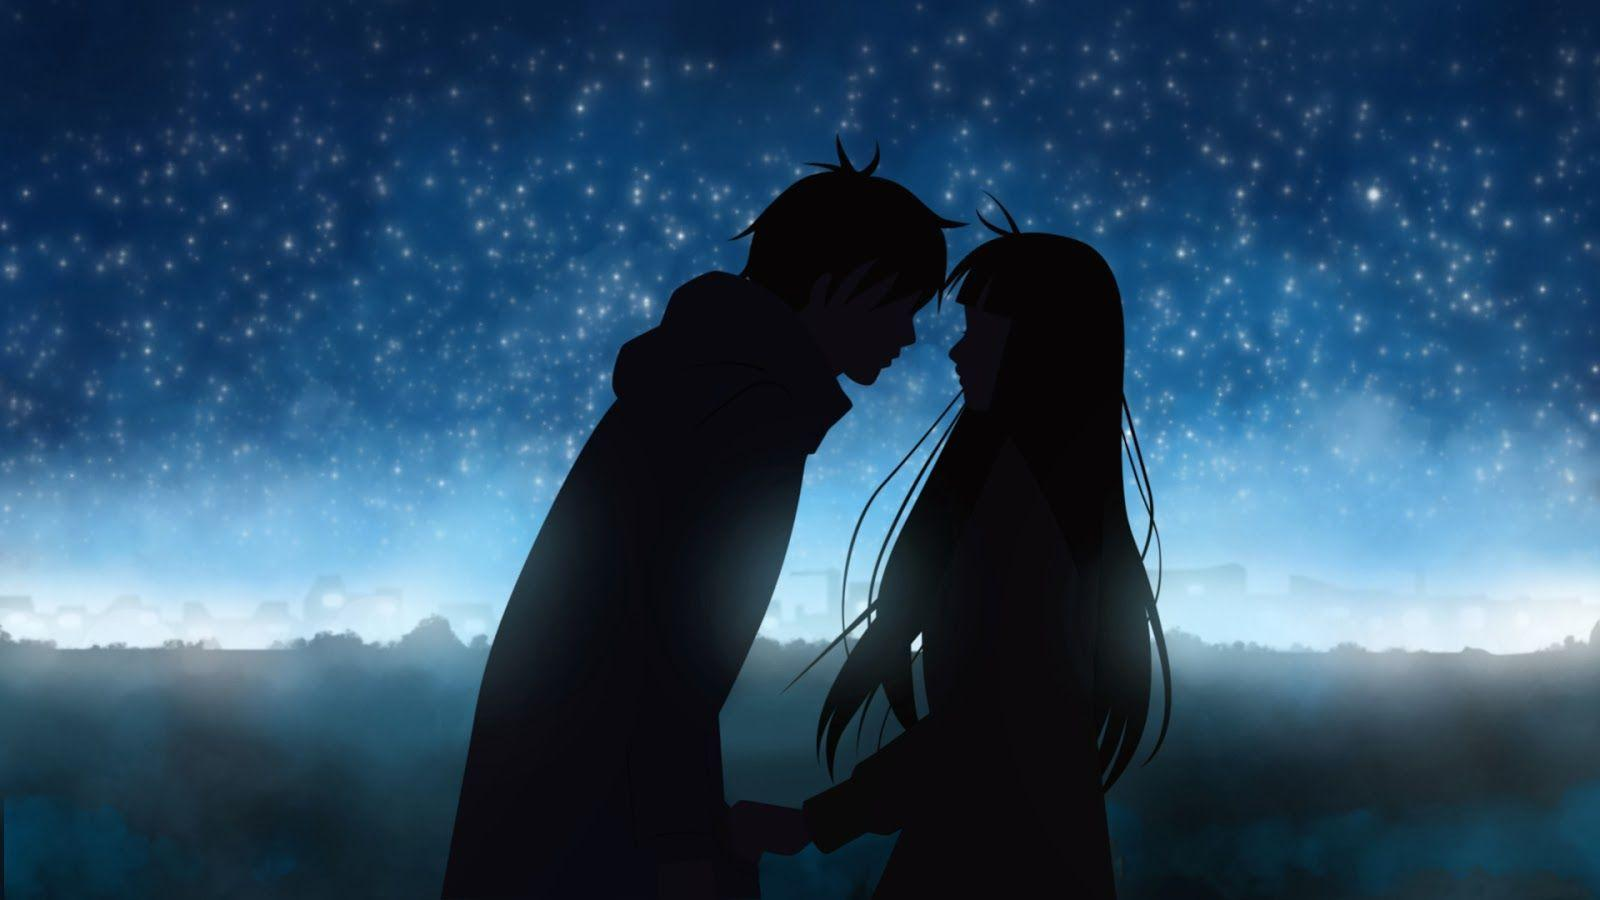 Love couple cover Wallpaper : Anime Love Wallpapers - Wallpaper cave